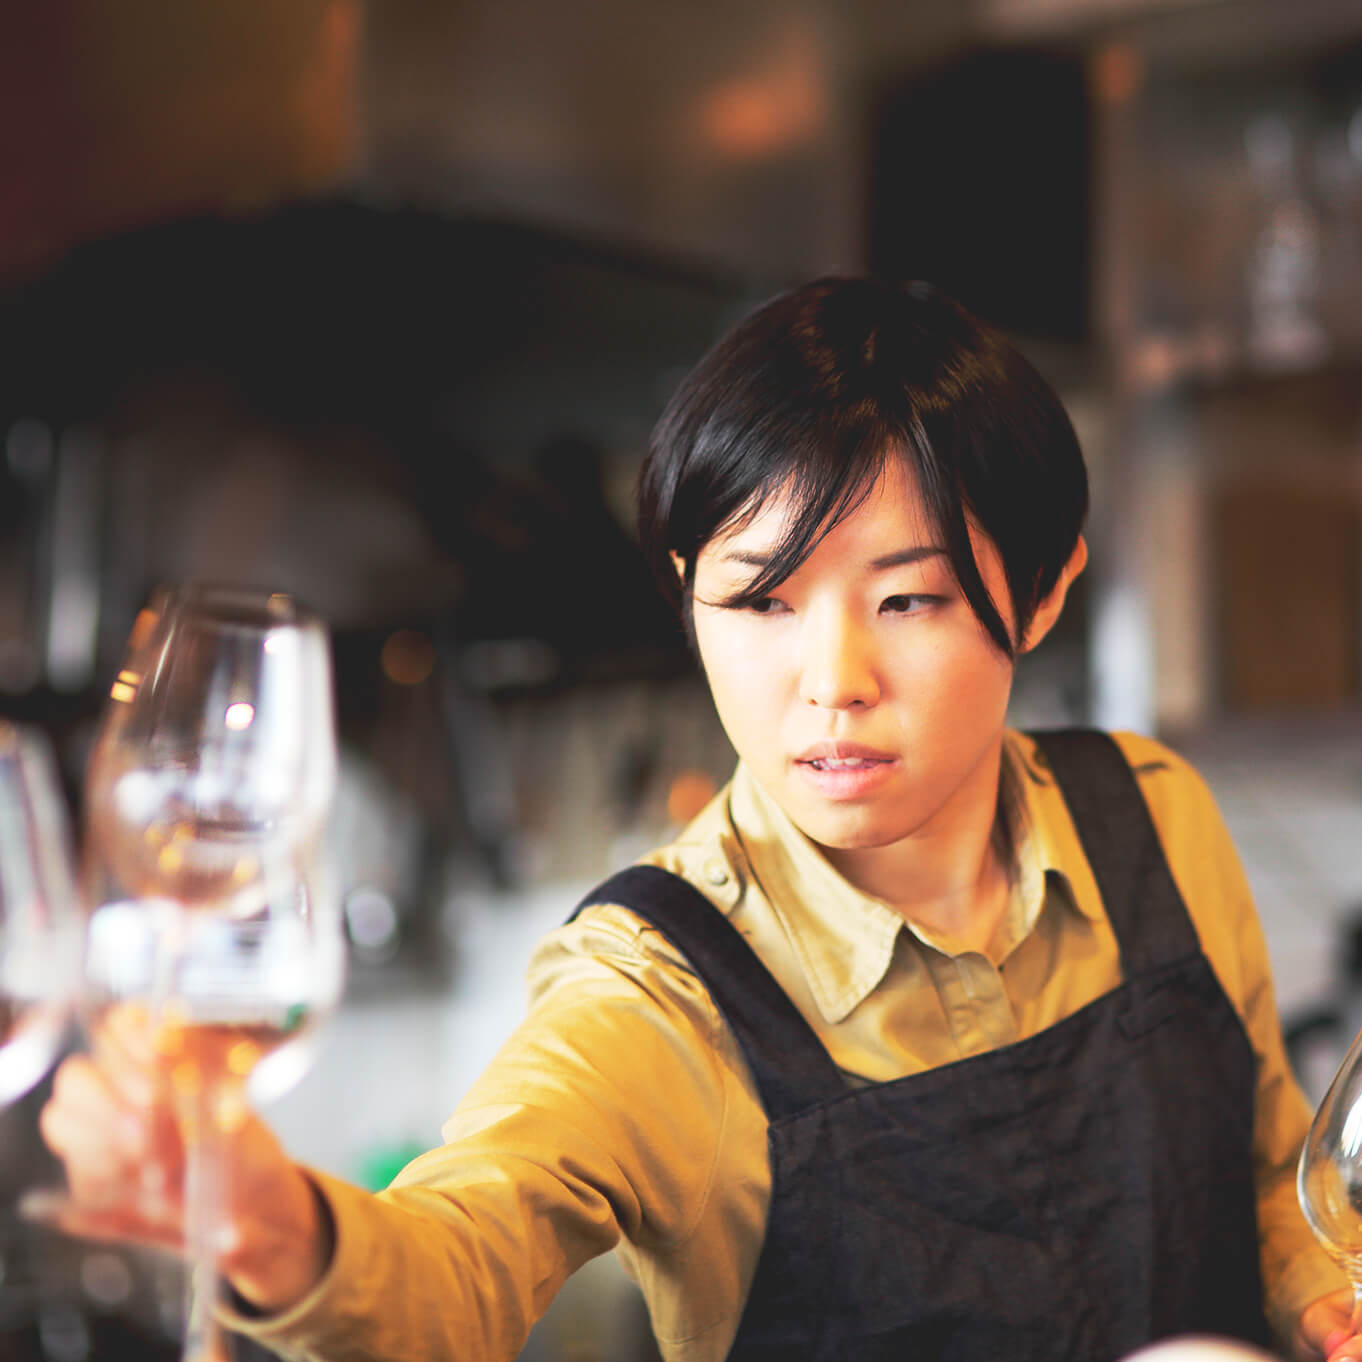 Young woman with black hair wearing a yellow shirt and black apron carefully placing wine glasses on a table.